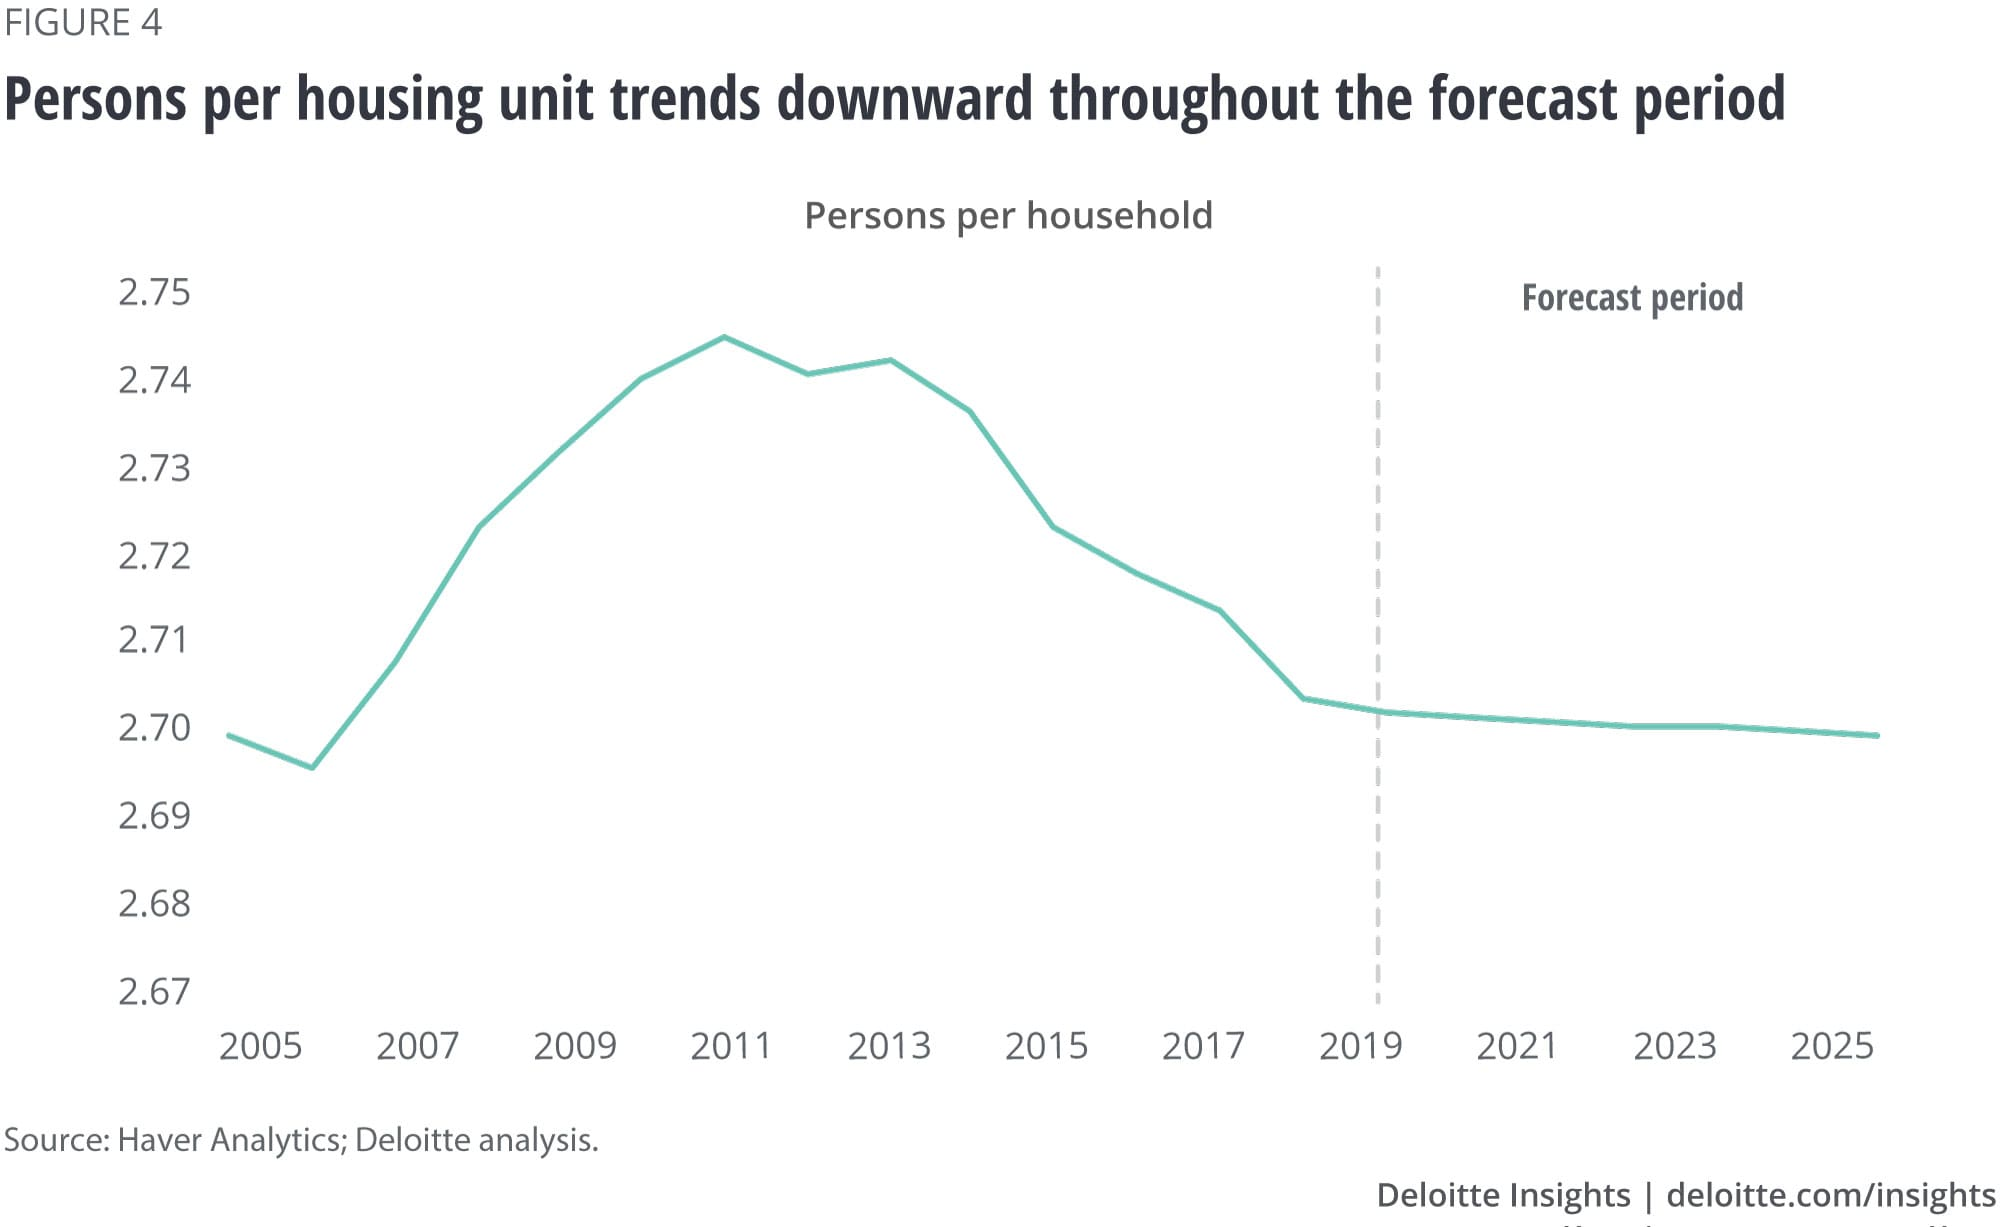 Persons per housing unit trends downward throughout the forecast period